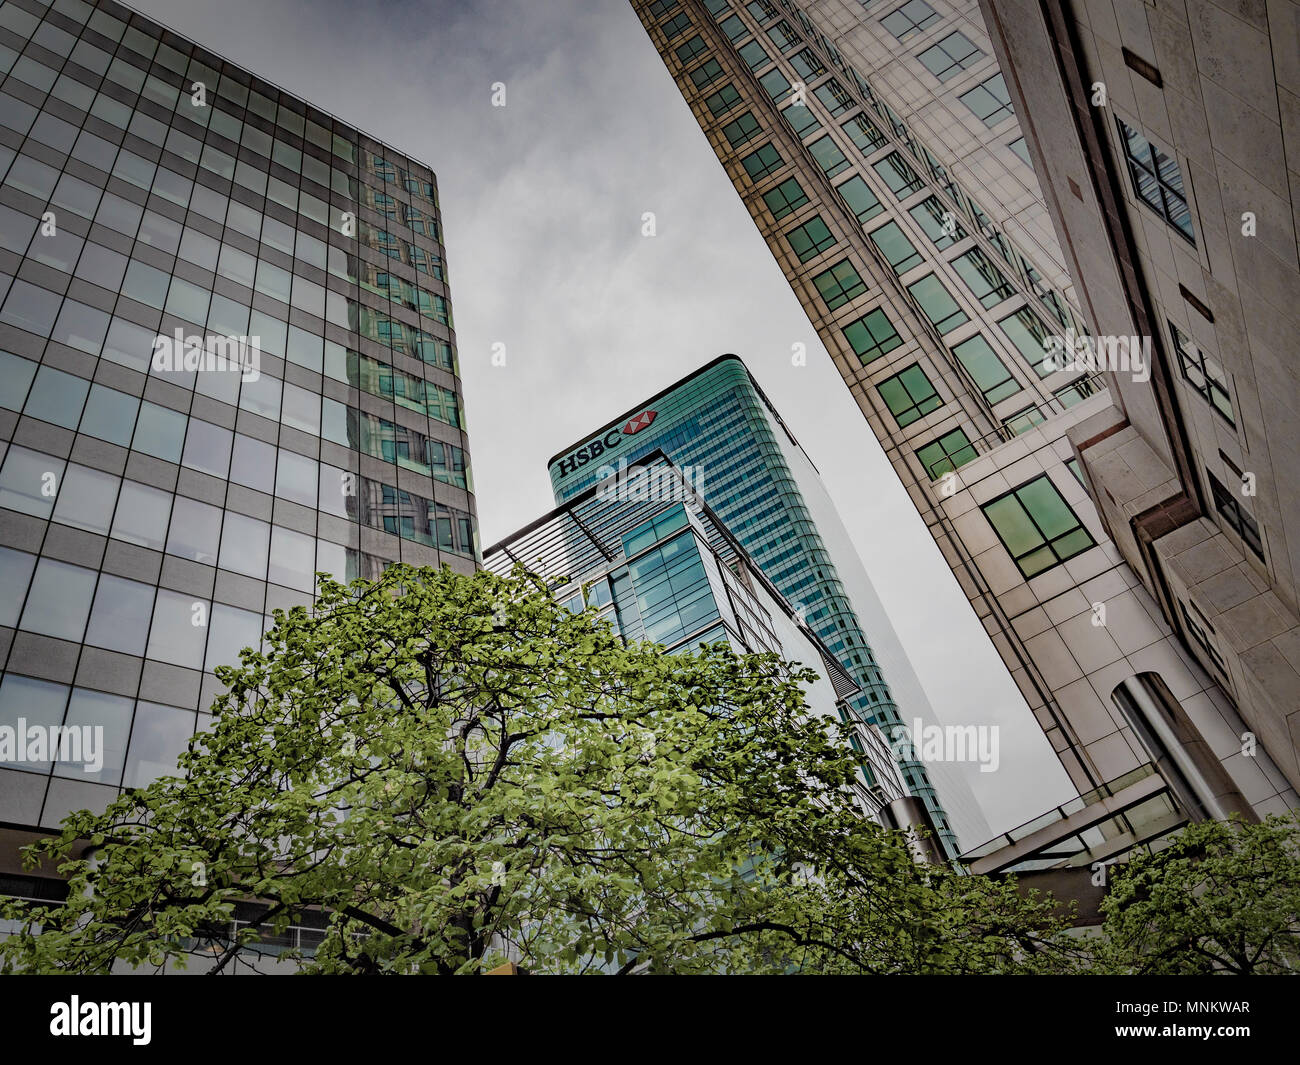 Urban Sofa Barneveld Glazed Building Stock Photos Glazed Building Stock Images Alamy